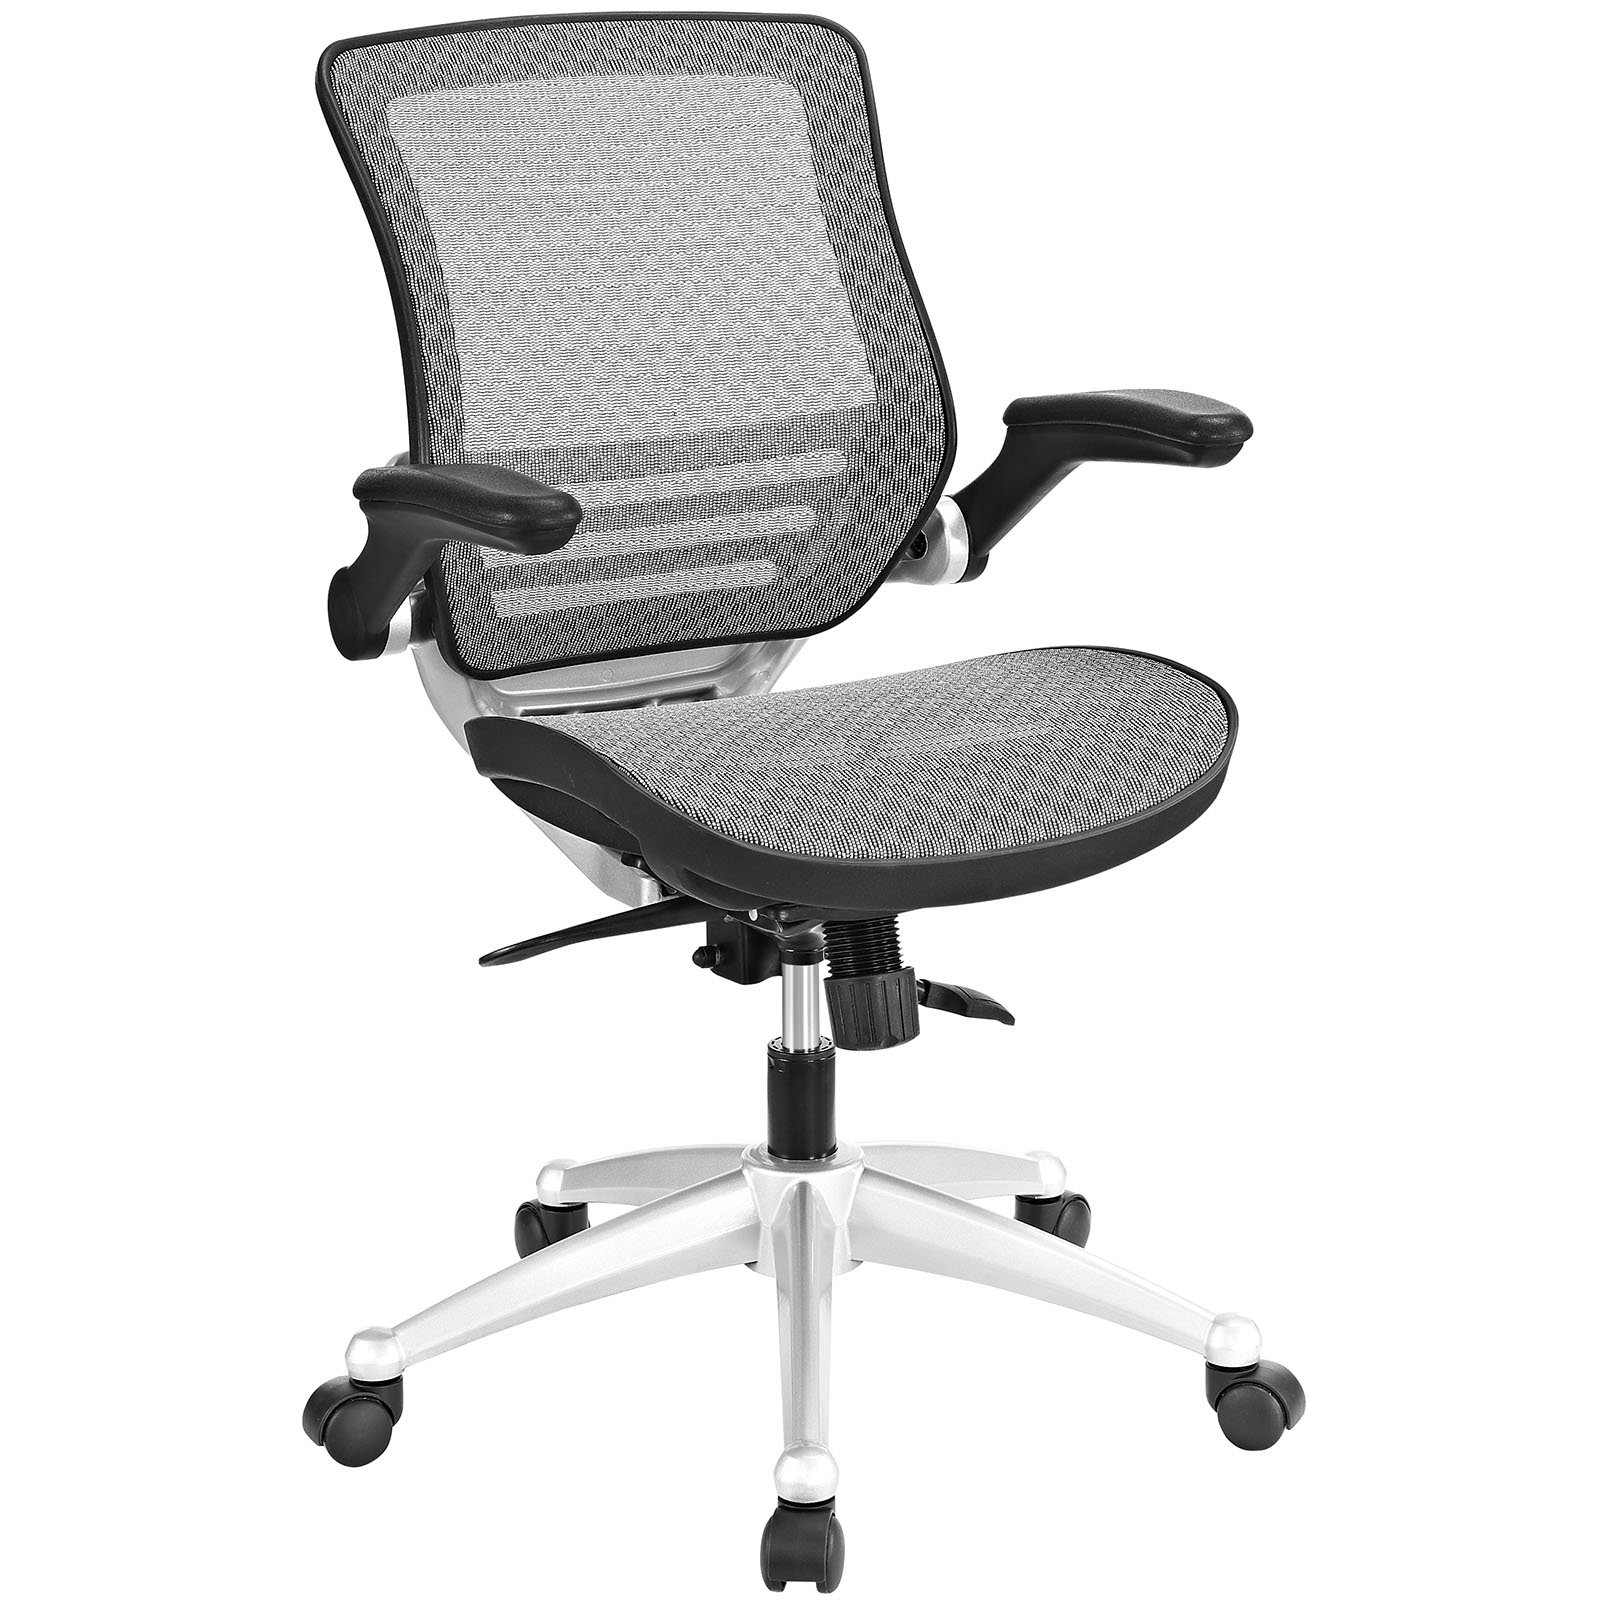 Modway Edge All Mesh Office Chair With Flip-Up Arms In Gray - Ergonomic Desk And Computer Chair